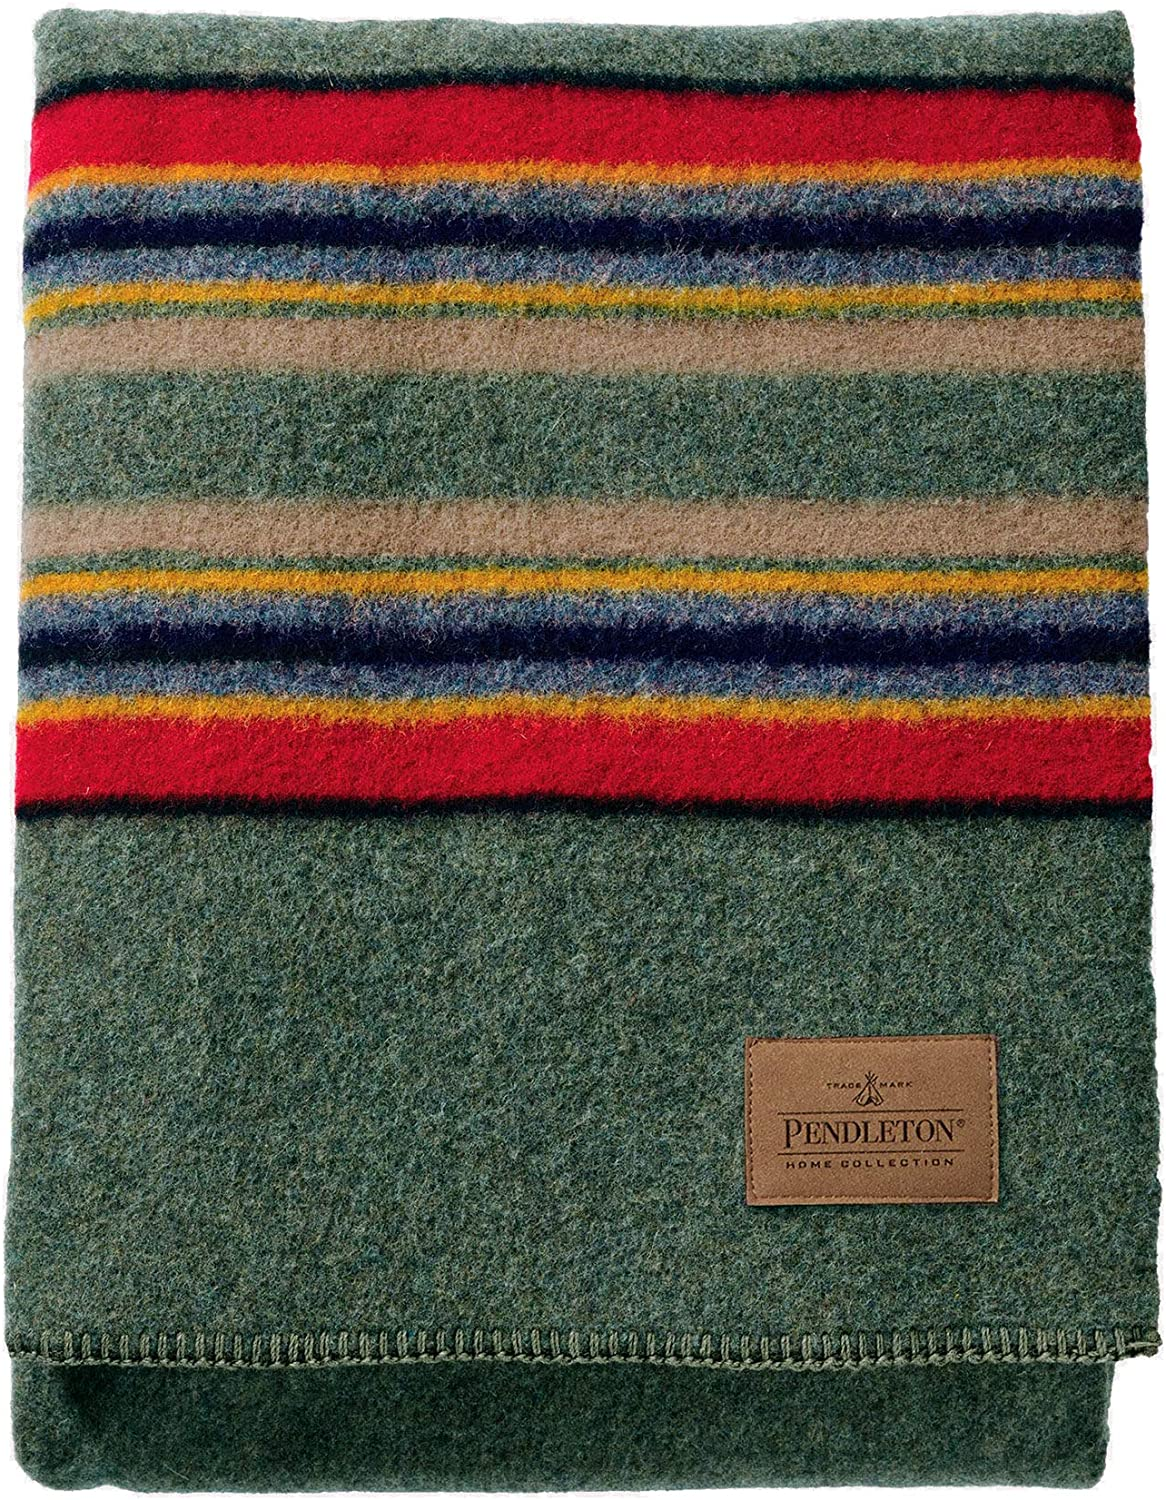 Pendleton Yakima Camp Thick Warm Wool Indoor Outdoor Striped Throw Blanket, Green Heather, Twin Size